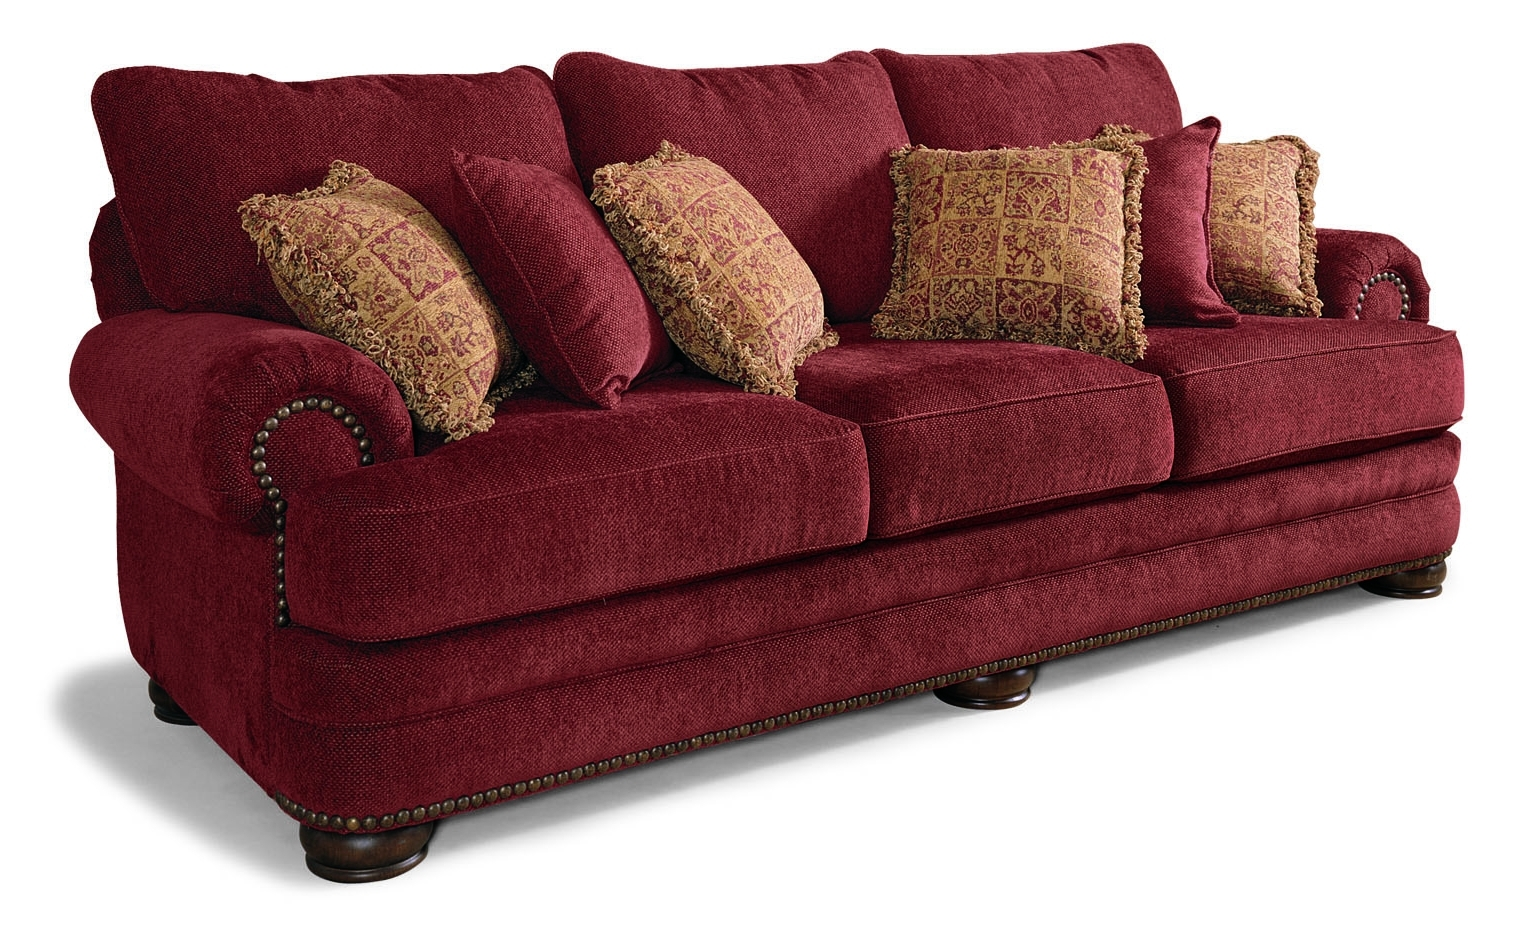 Lane Furniture Sofas In Newest Stanton Stationary Sofa – Lane 86330, 863 (View 9 of 15)